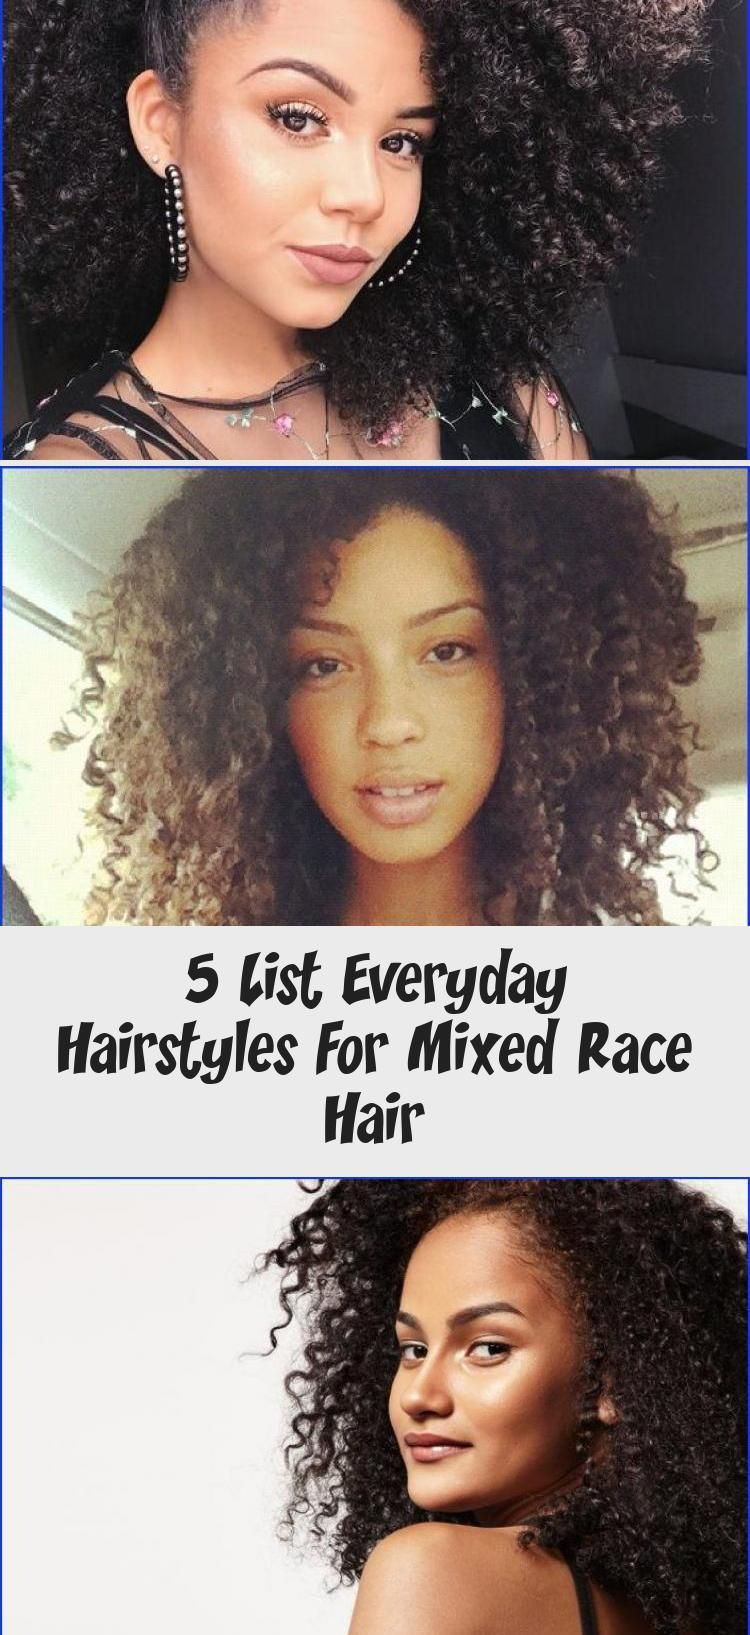 5 List Everyday Hairstyles For Mixed Race Hair   Everyday ...